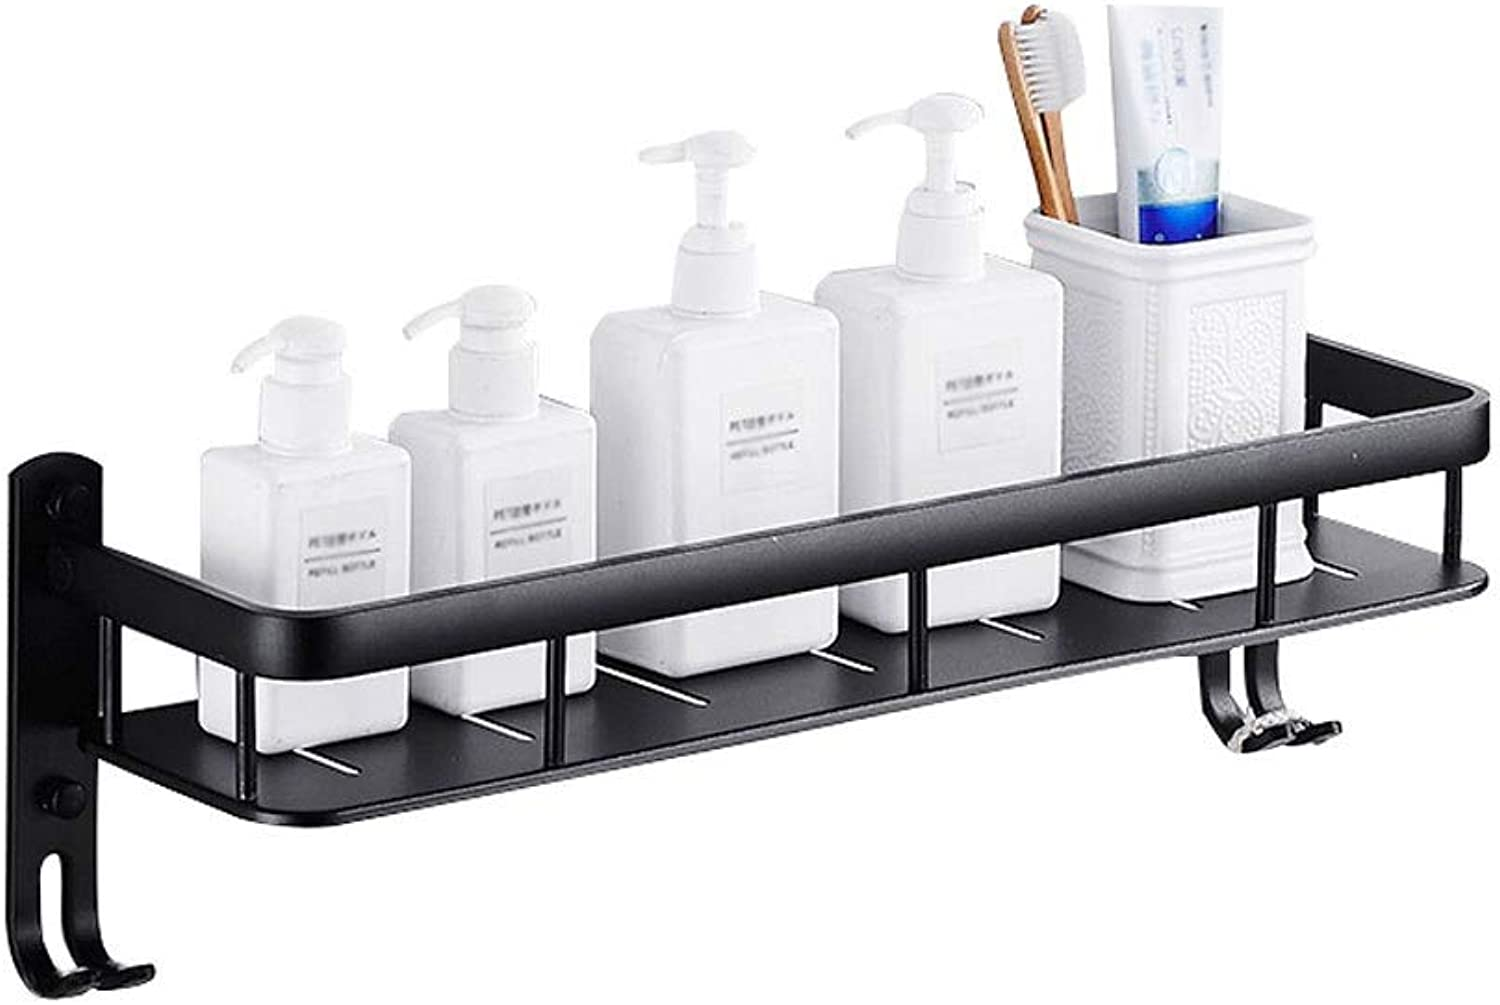 Bathroom Wall-Mounted Racks for Kitchen Or Bathroom, Condiments, Shampoo Or Bathroom Products, Space Aluminum, with Hooks, Available in A Variety of Sizes, Black (Size   50cm)